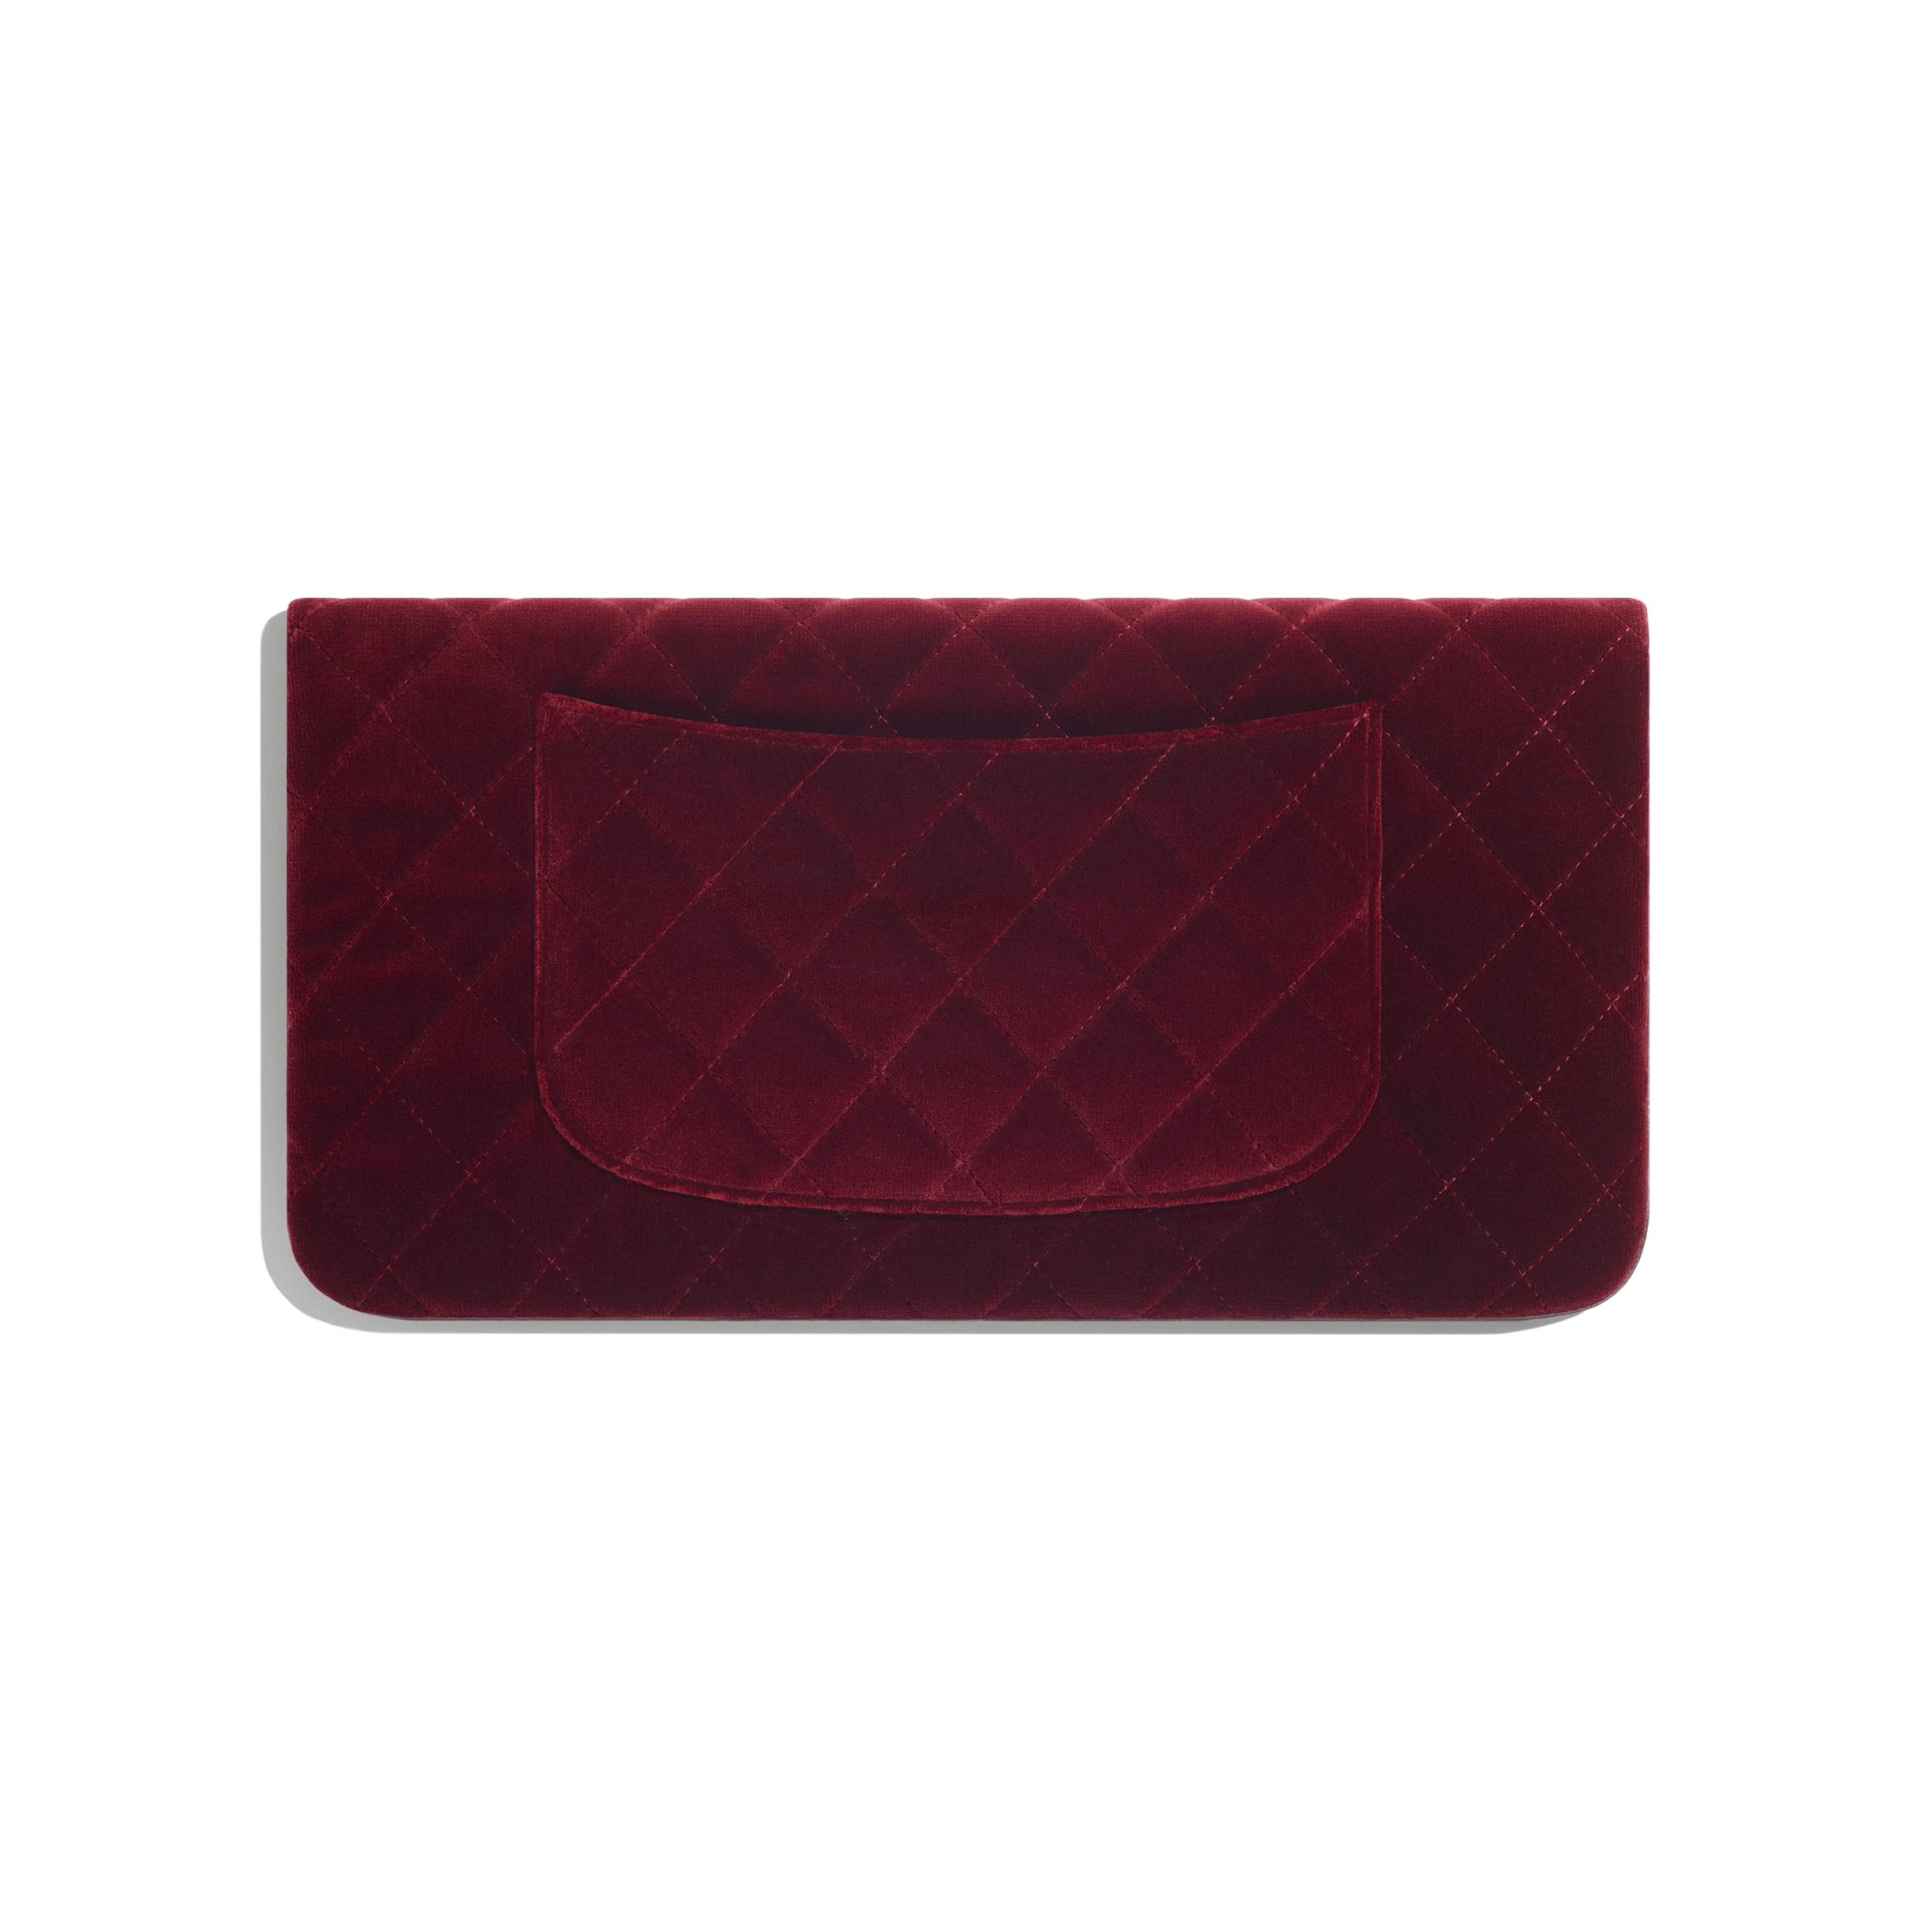 CHANEL 31 Pouch - Burgundy - Velvet, Lambskin & Gold Metal - Alternative view - see standard sized version